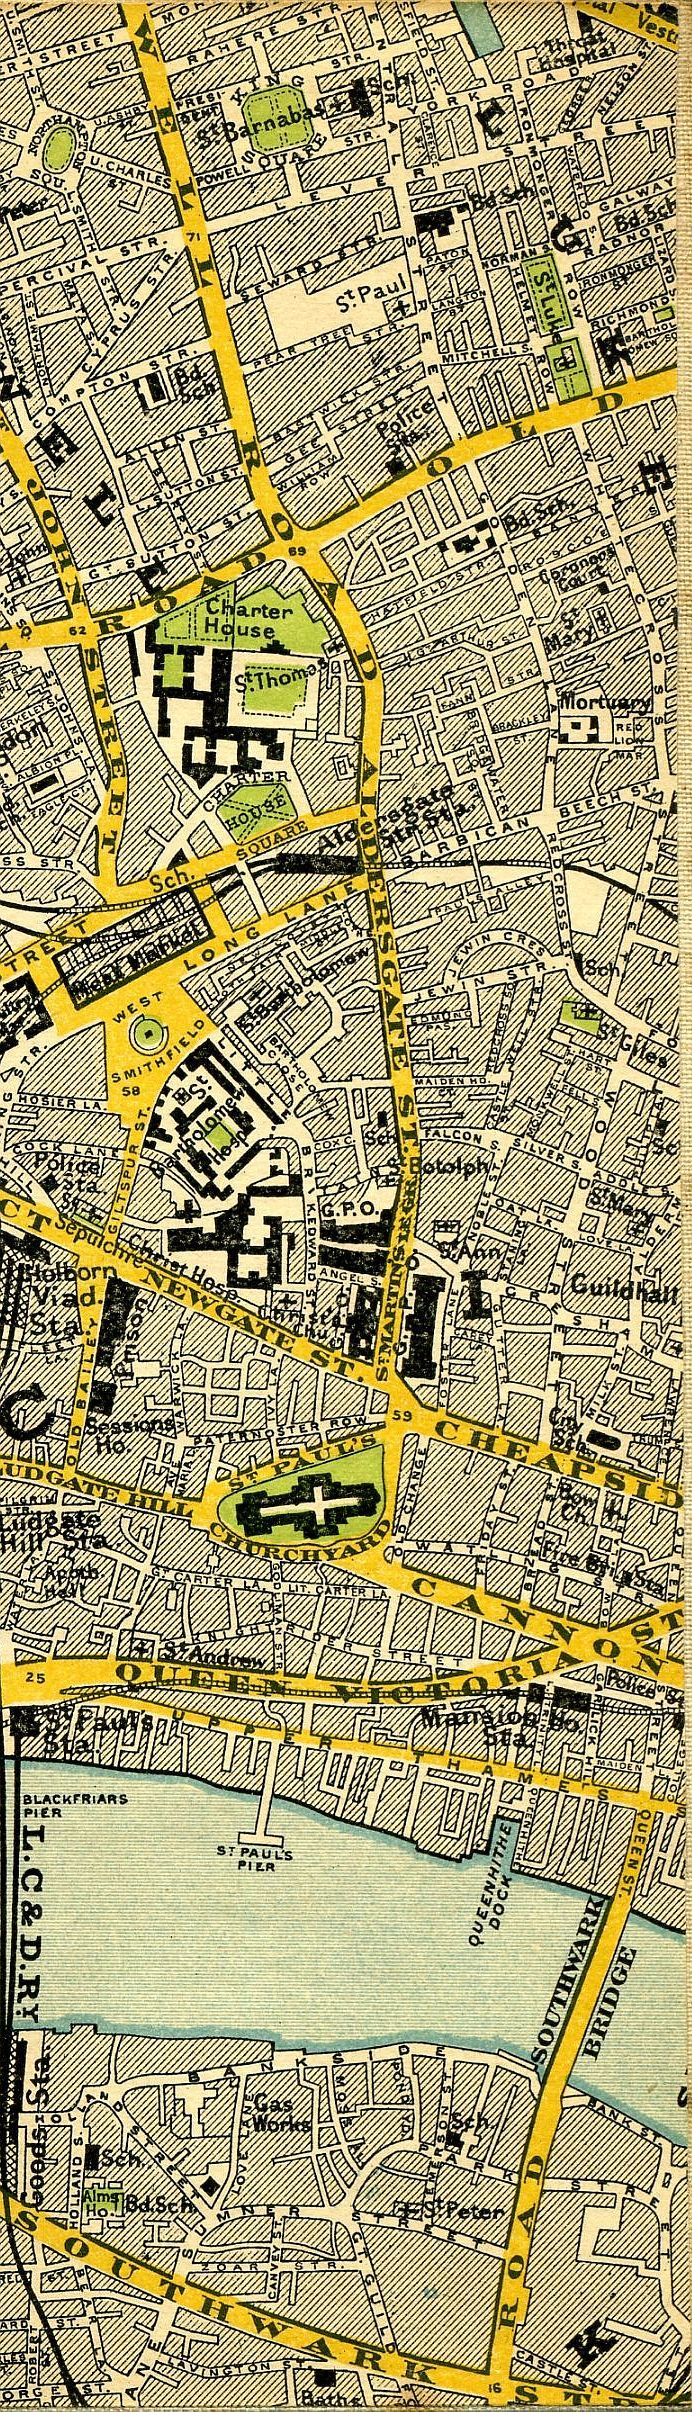 1897 map of central London - St. Luke's and St. Paul's